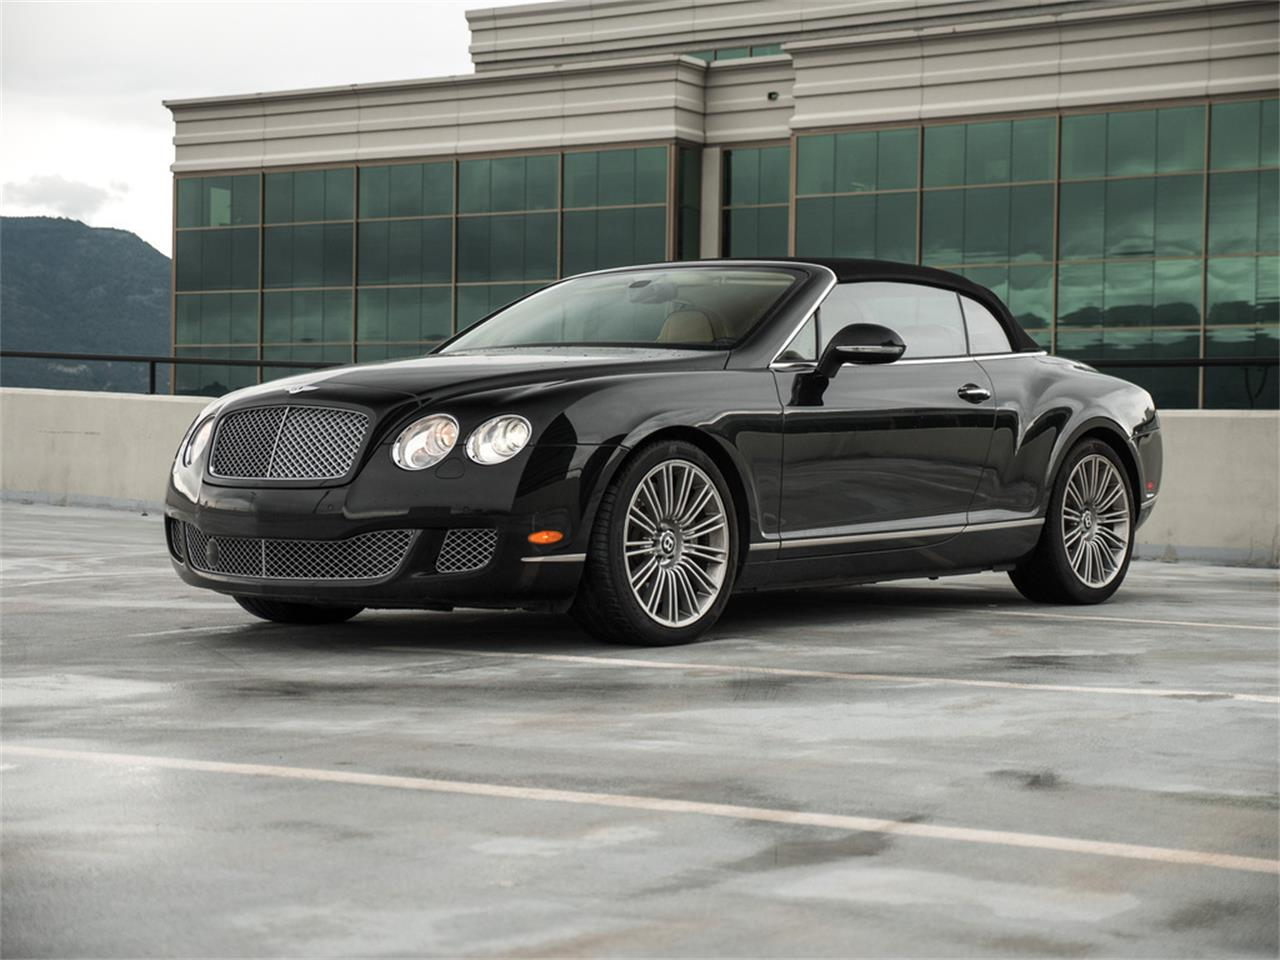 Large Picture of '11 Continental - $91,819.00 Offered by August Motorcars - QA5D